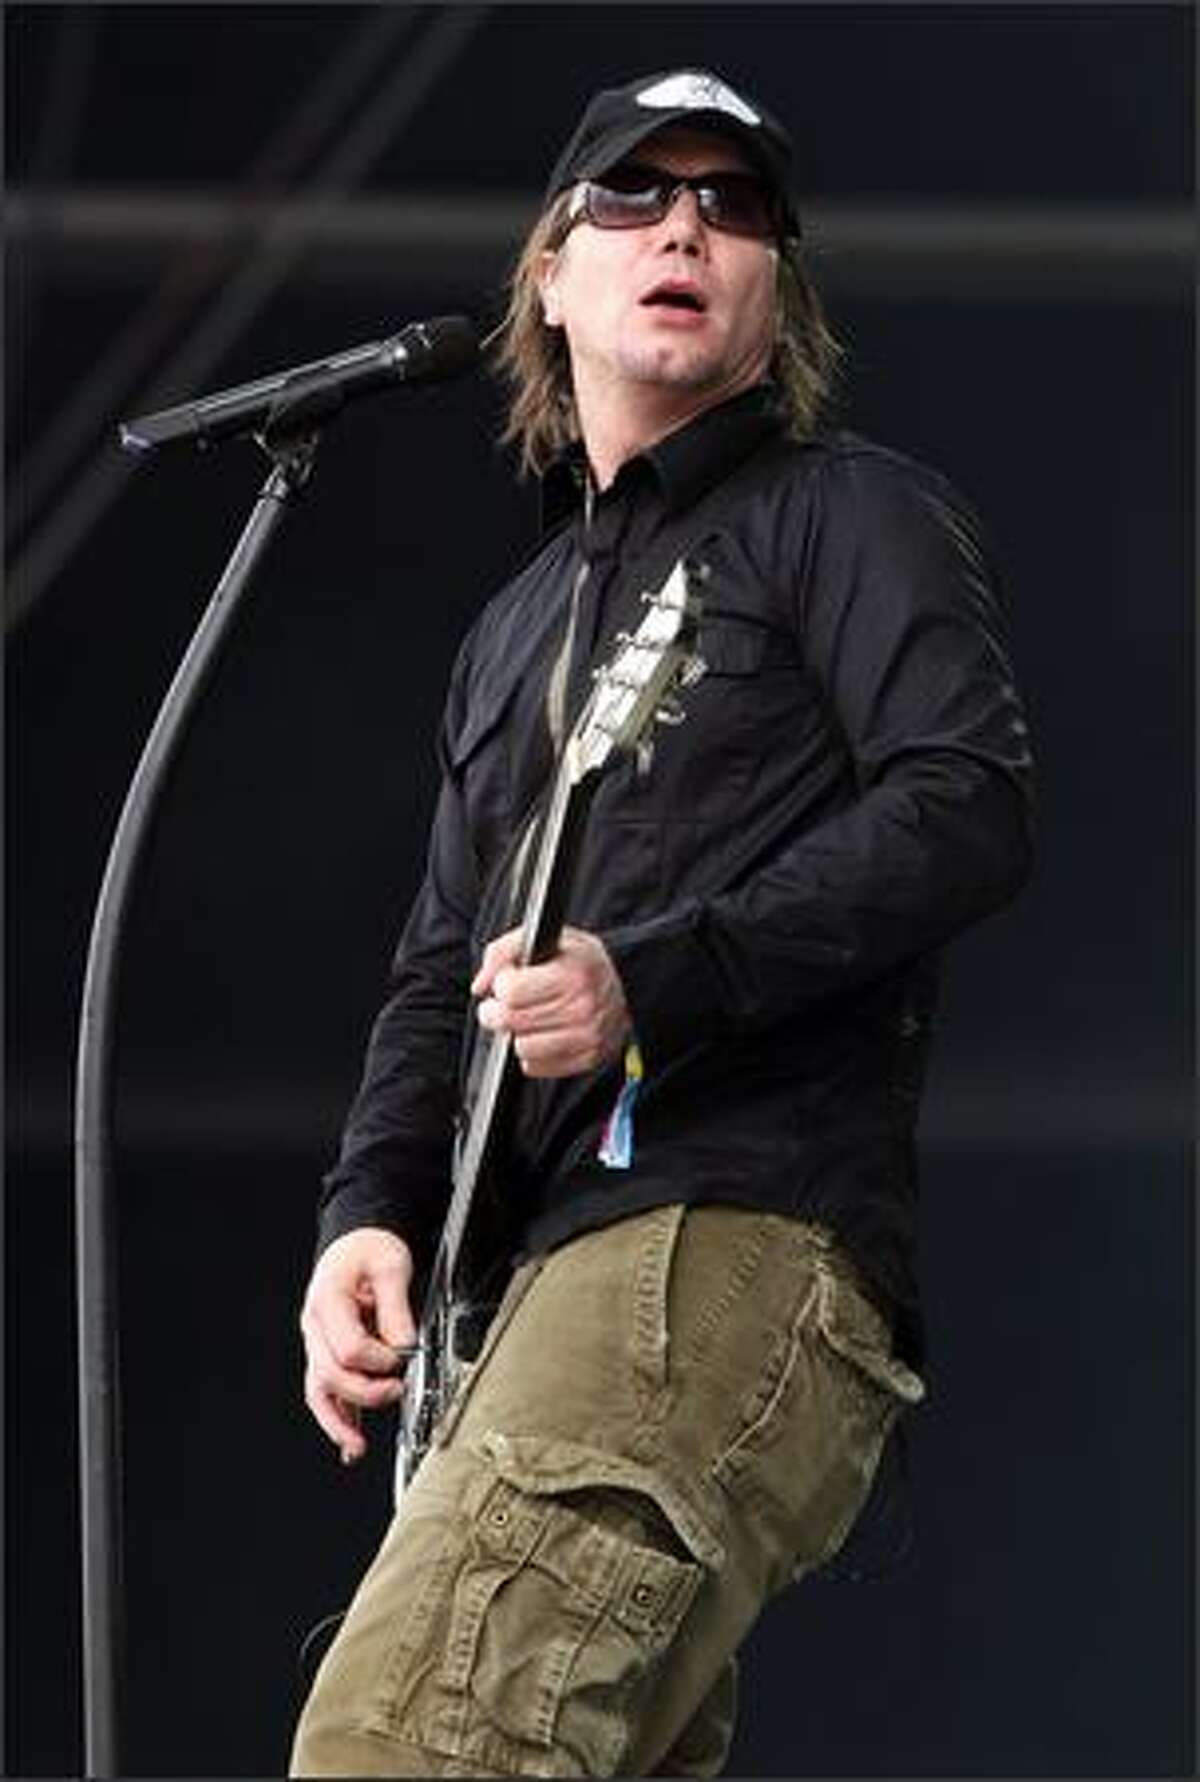 John Rzeznik of the Goo Goo Dolls performs on the main stage during day 4 of the O2 Wireless Festival 2008 on Sunday in London, England.